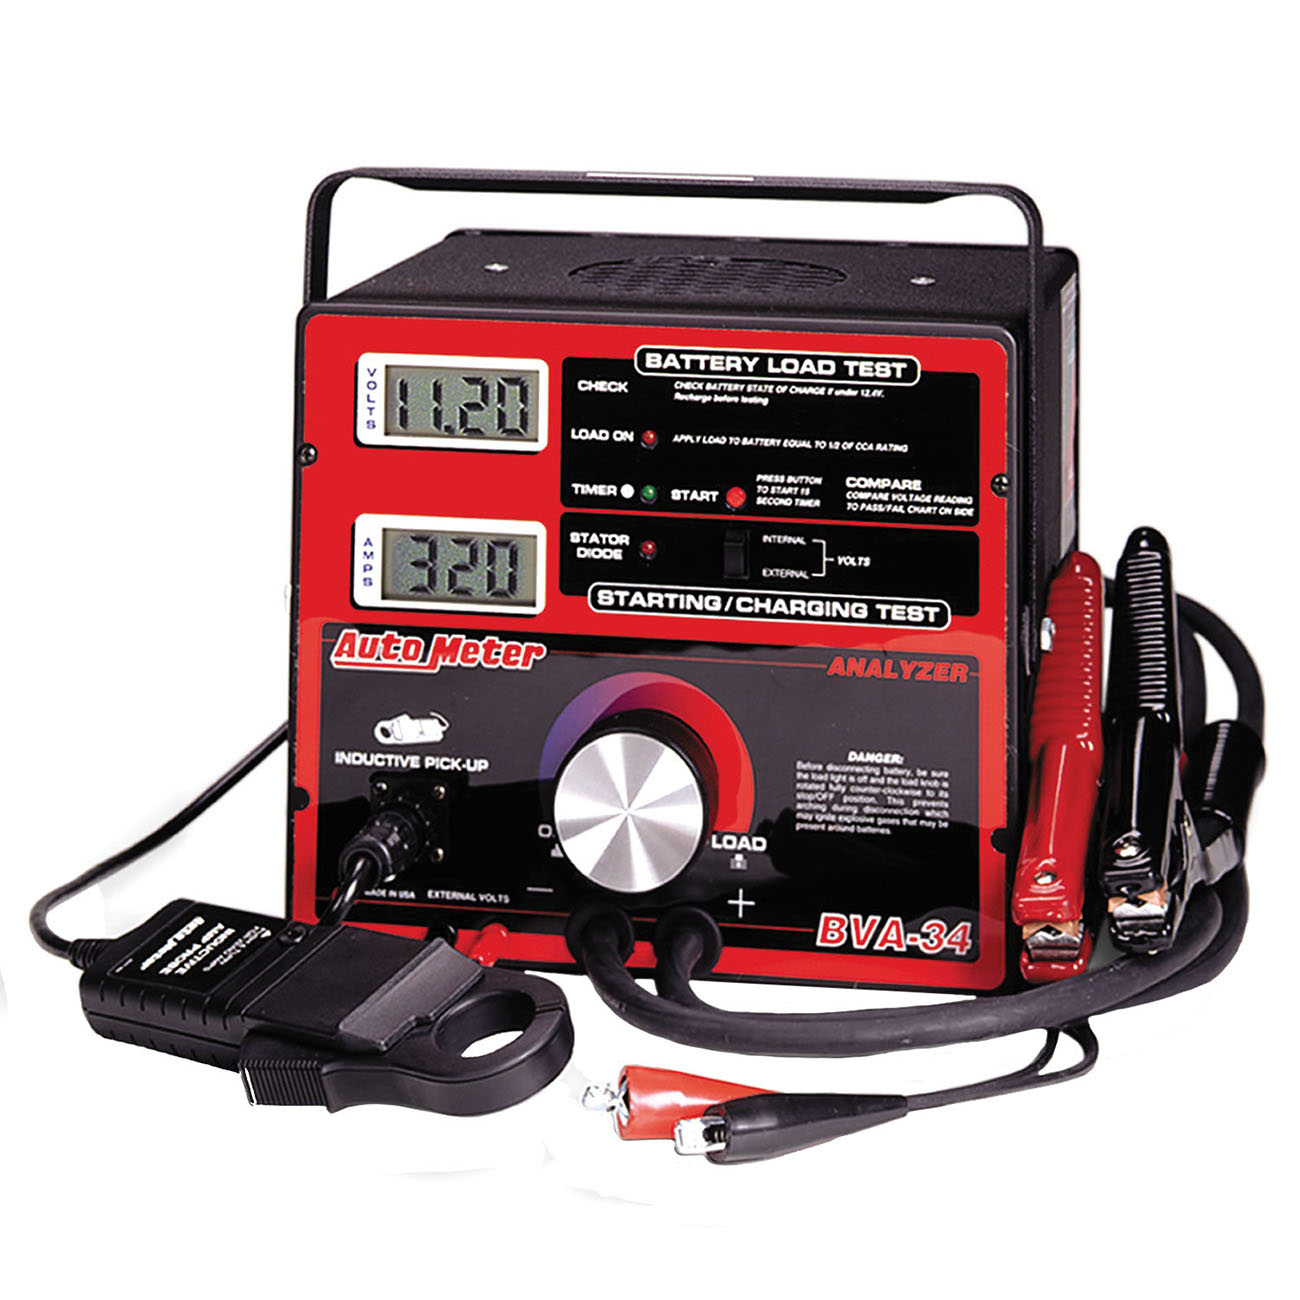 Electrical Load Tester : Bva amp variable load battery electrical system